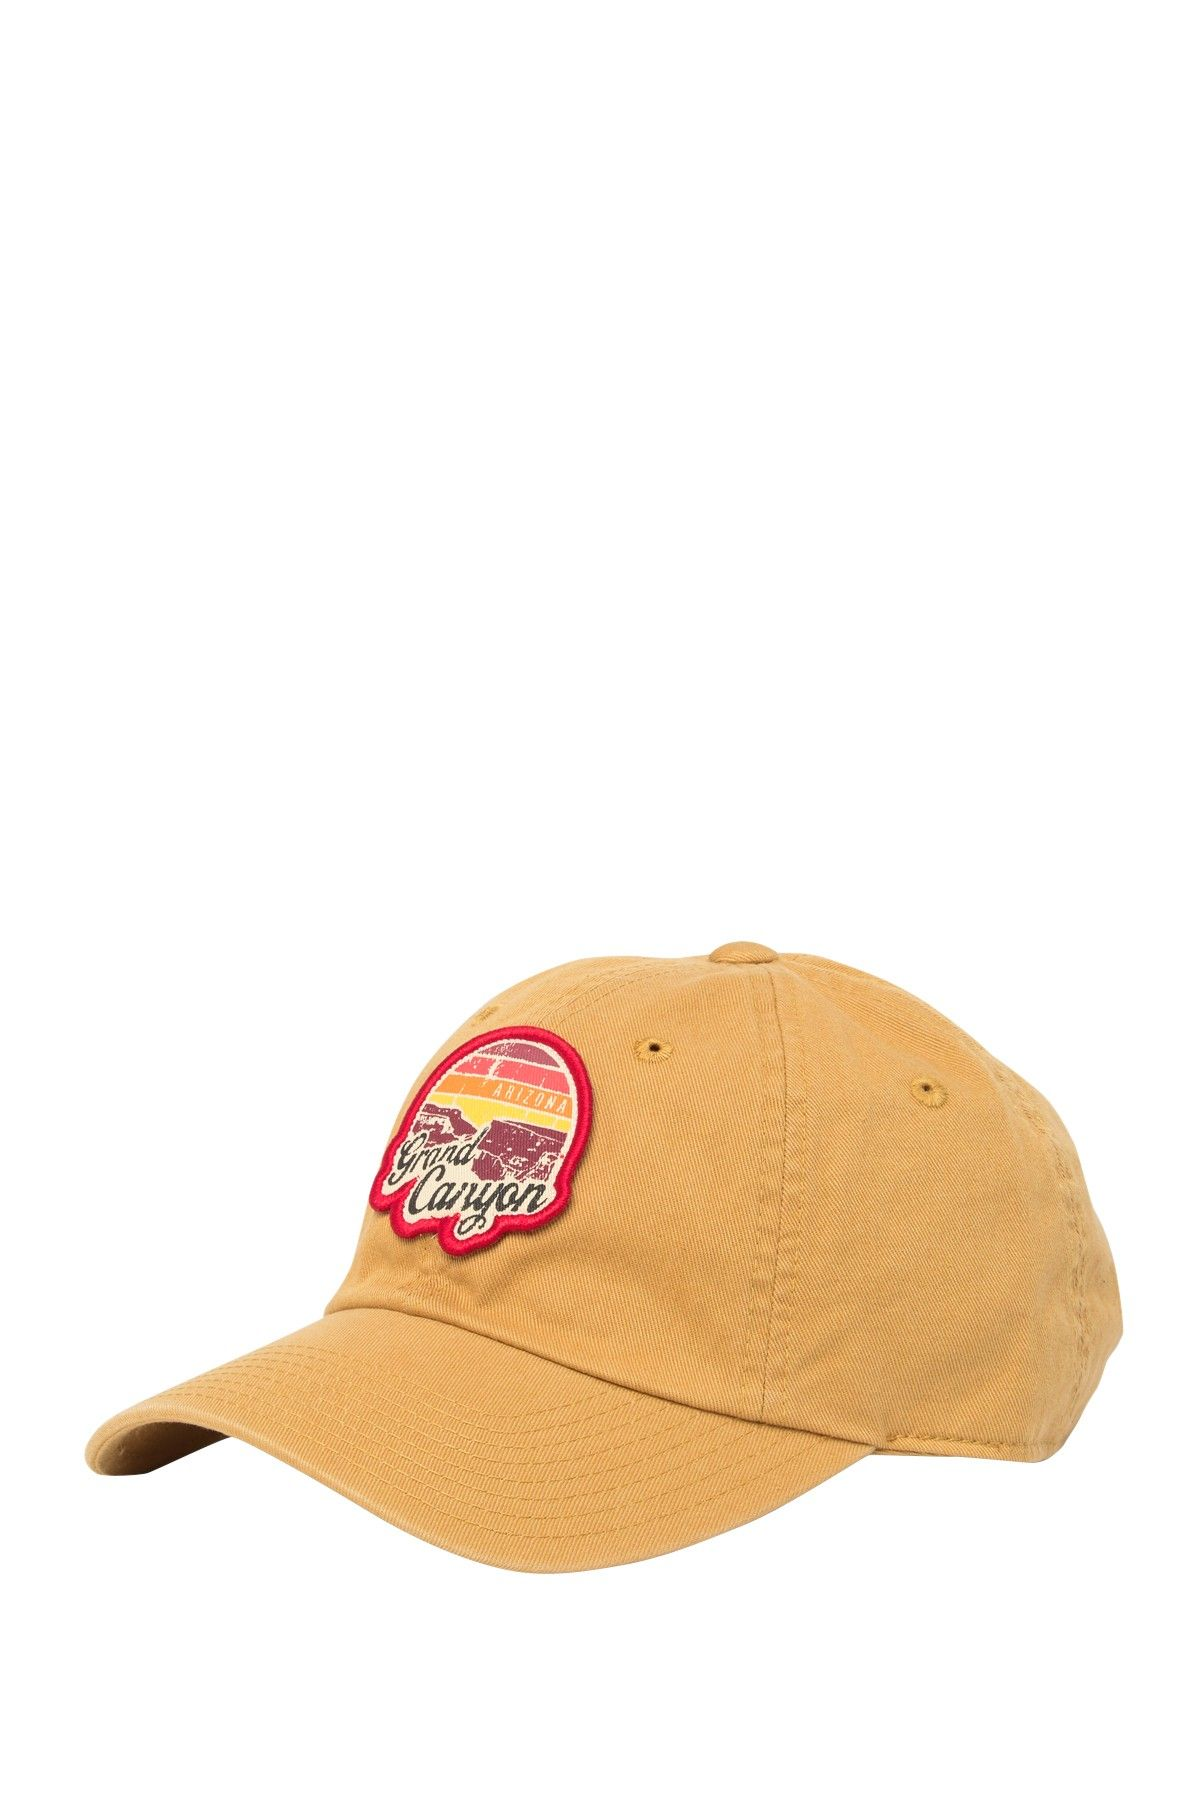 5c69a0acd6864 Grand Canyon National Park Baseball Cap by American Needle on   nordstrom rack